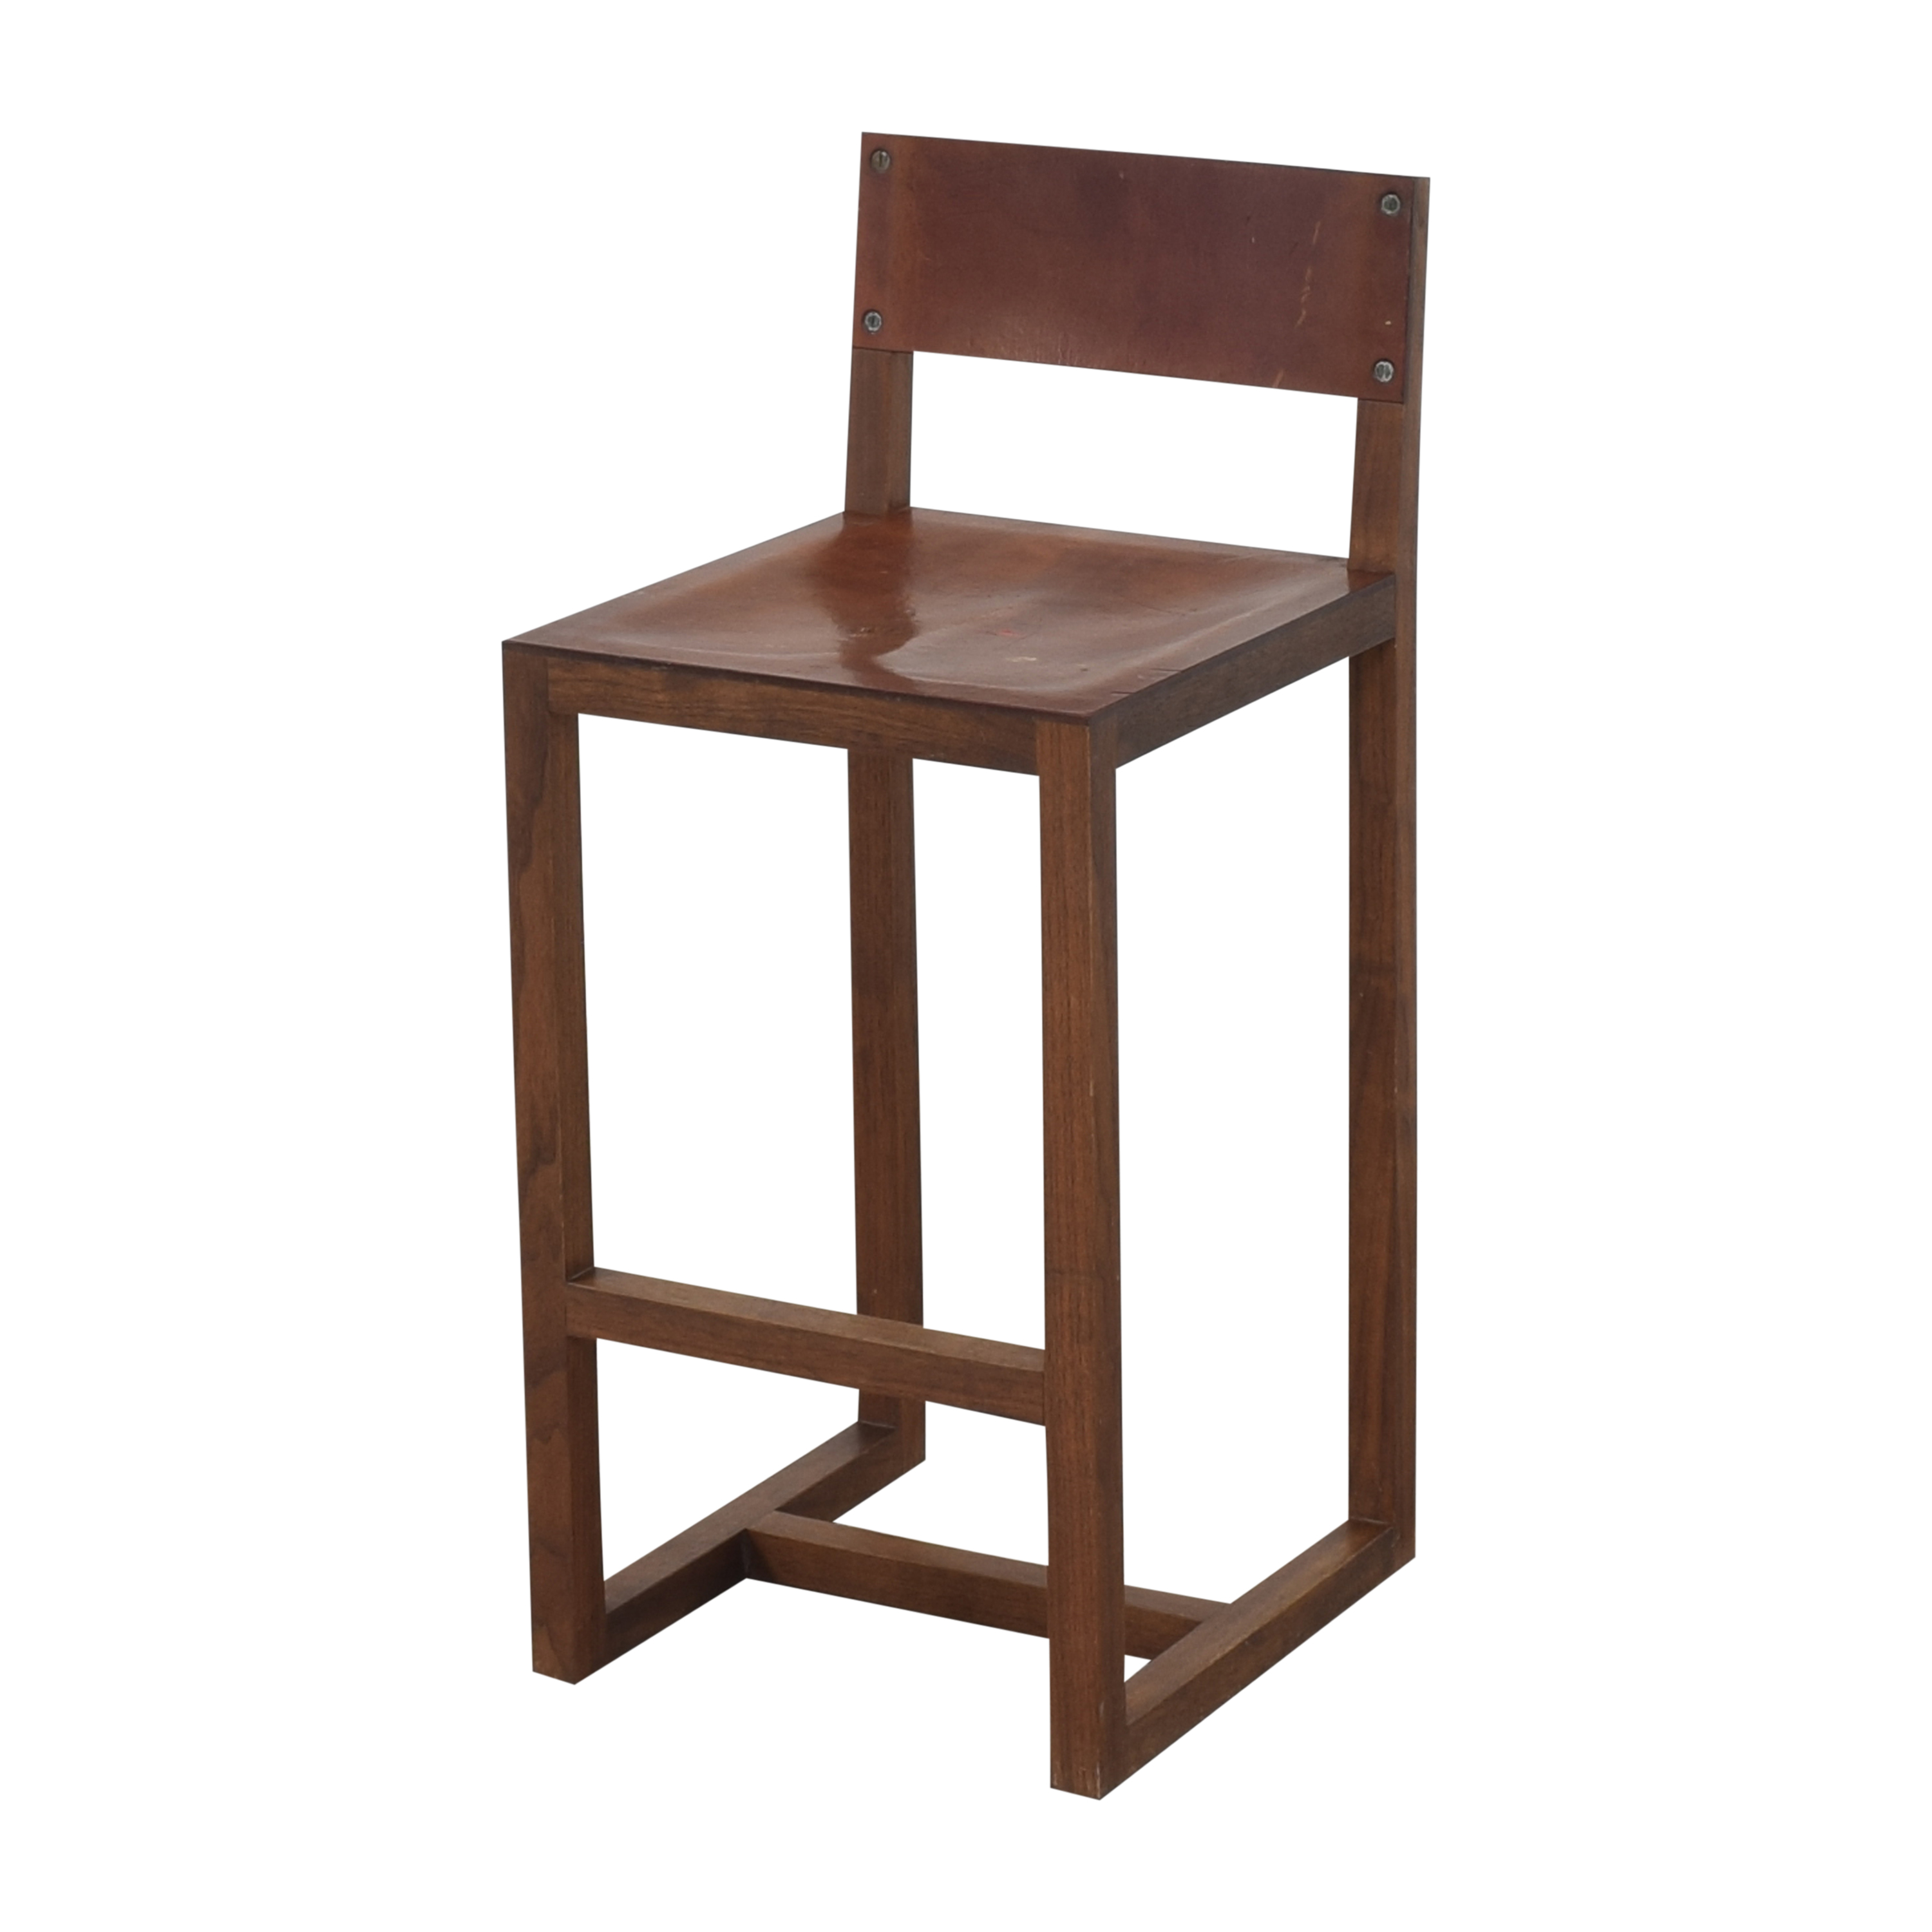 buy BDDW Square Guest Counter Stools BDDW Chairs